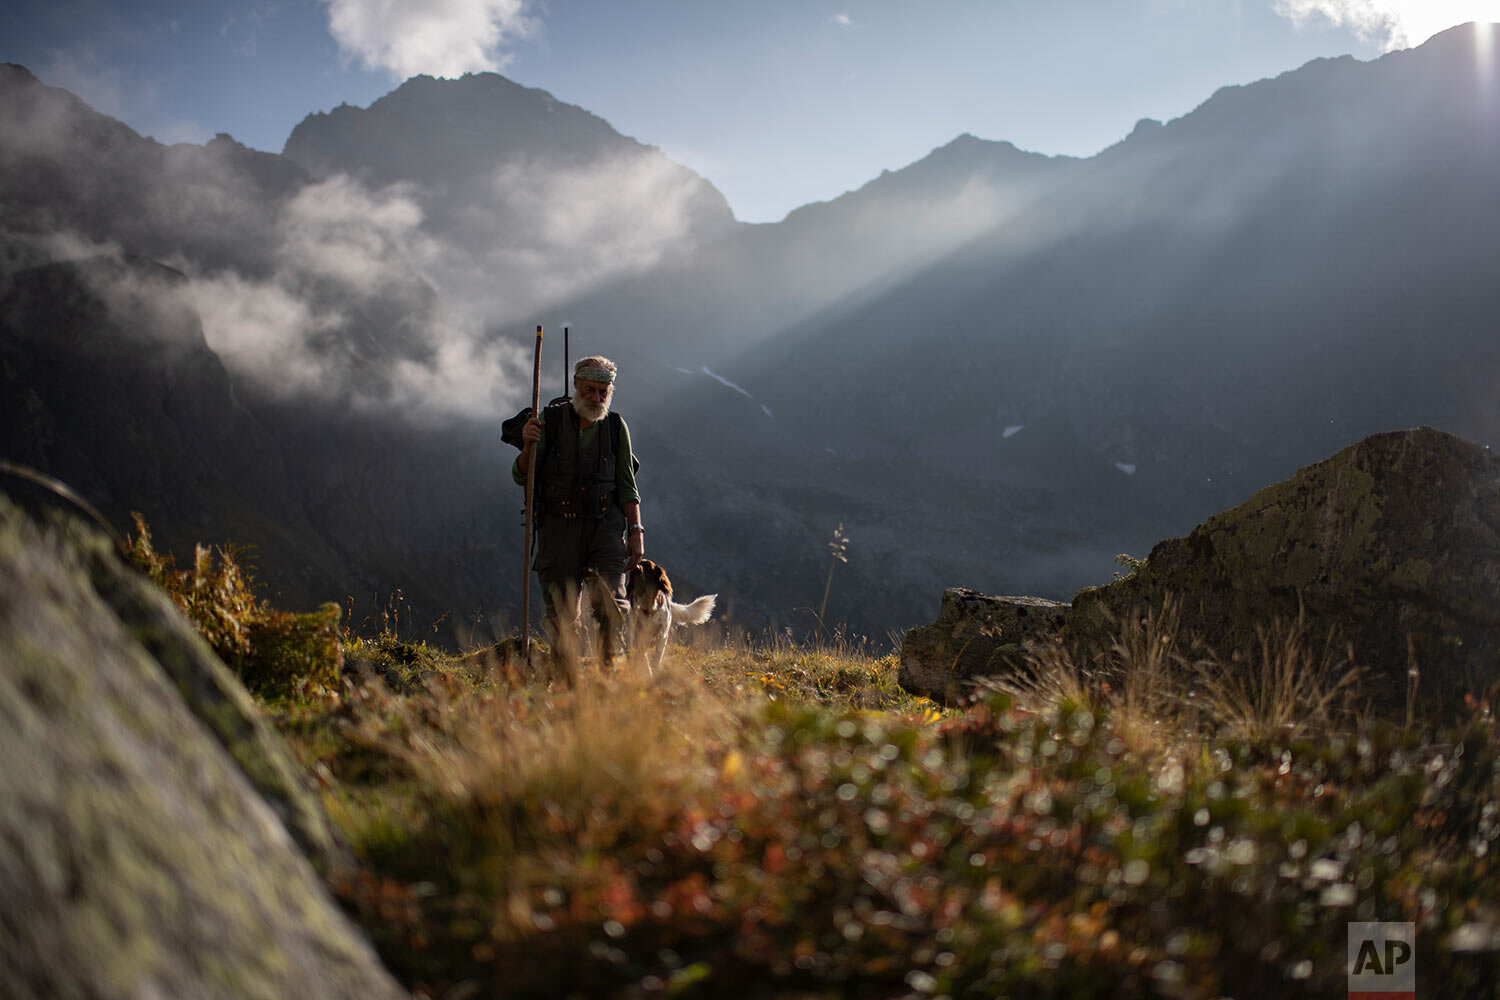 Hunter Peter Marugg and his dog, Fjura, look for chamois, in the second of the three-week-long hunting season in Klosters, Graubuenden, Switzerland, on Thursday, Sept. 19, 2019. The 69-year old said he has been hunting since 1970. Hunting has a long standing tradition in the canton of Graubuenden, with approximately 5,500 practicing. (Gian Ehrenzeller/Keystone via AP)